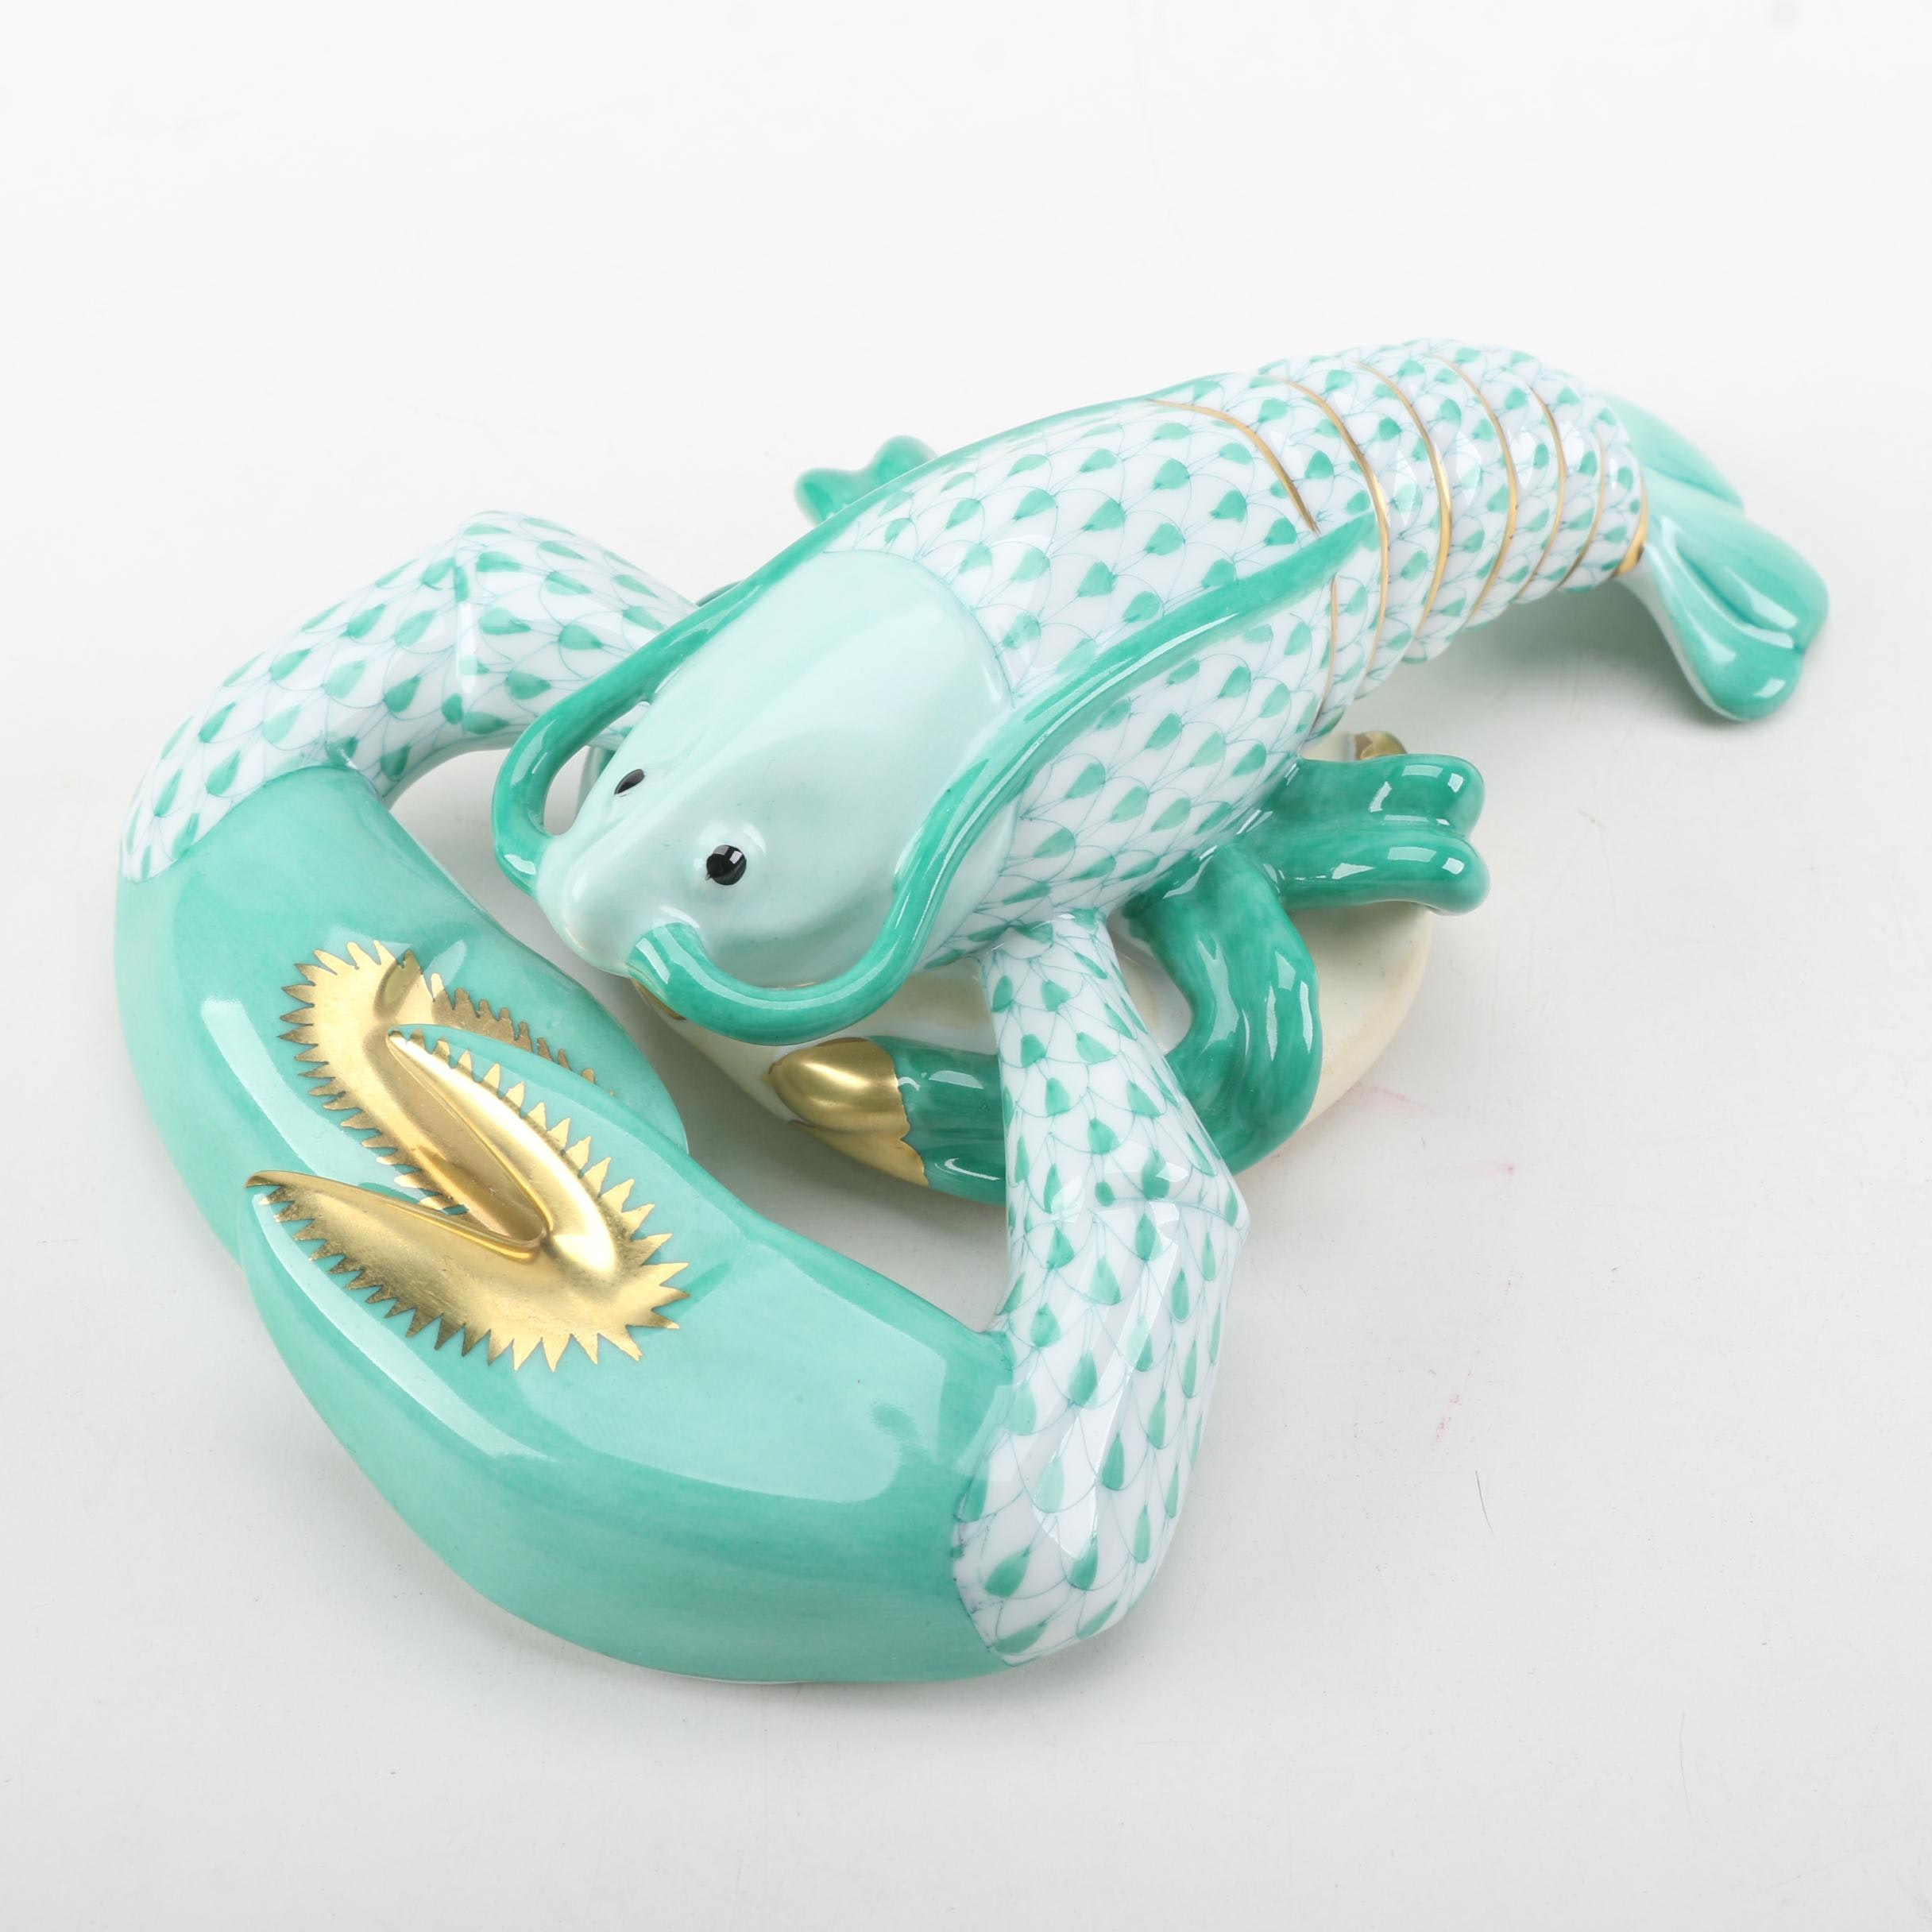 Herend Handmade and Hand-Painted Green Porcelain Lobster Figurine with 24K Gold